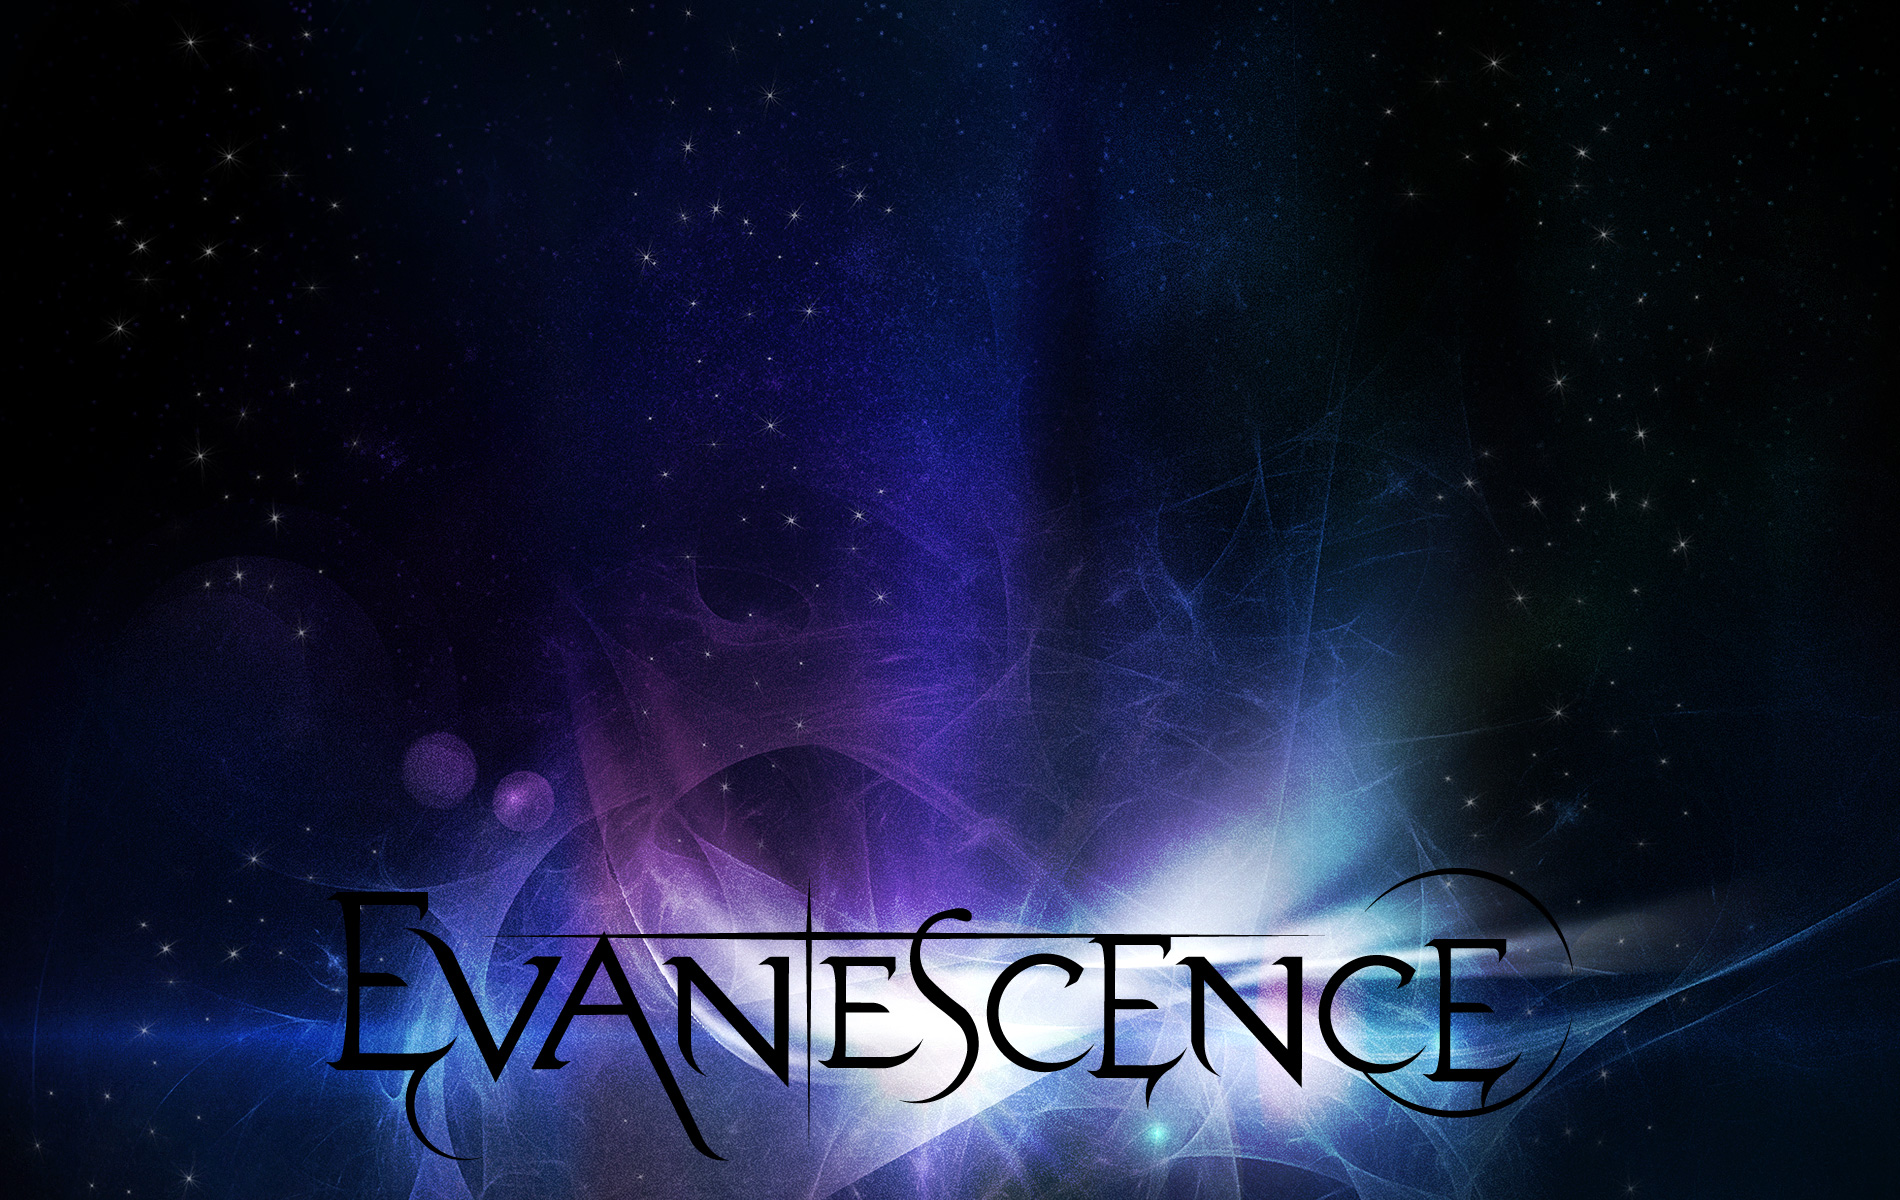 Evanescence evanescence wallpaper 1900x1200